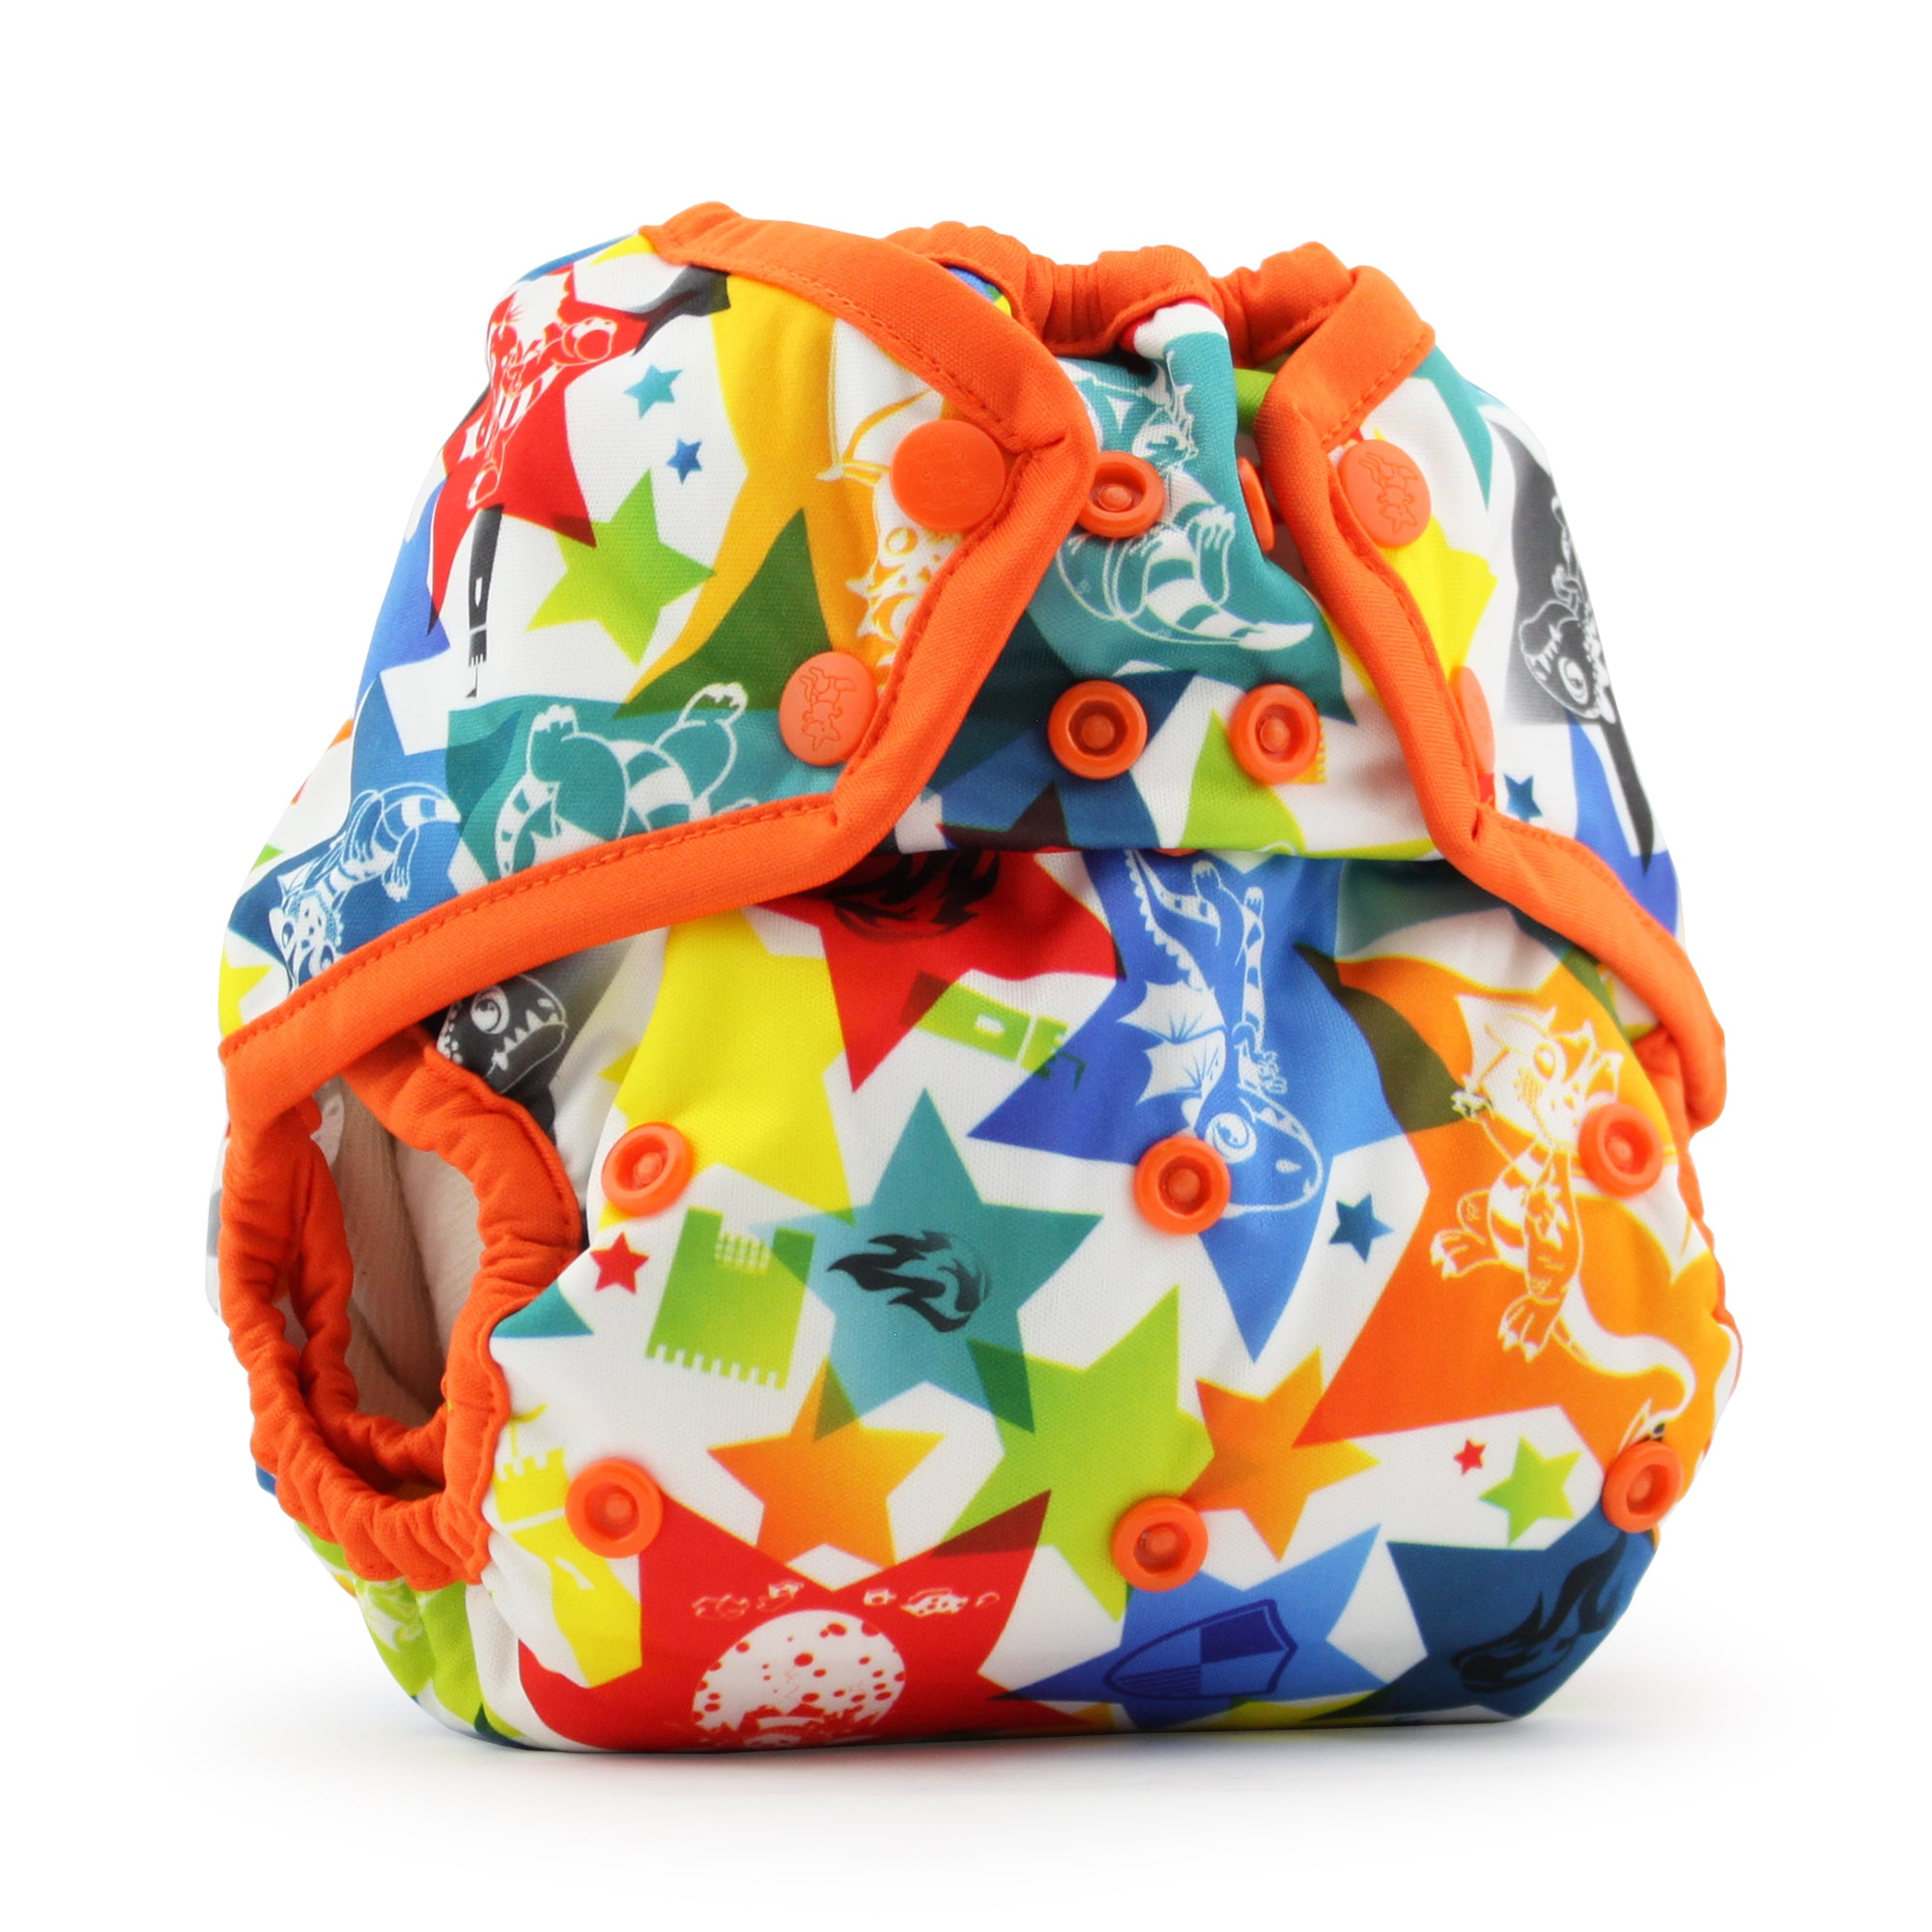 Rumparooz-Dragons-Fly-Poppy-Trim-Cloth-Diaper-Cover